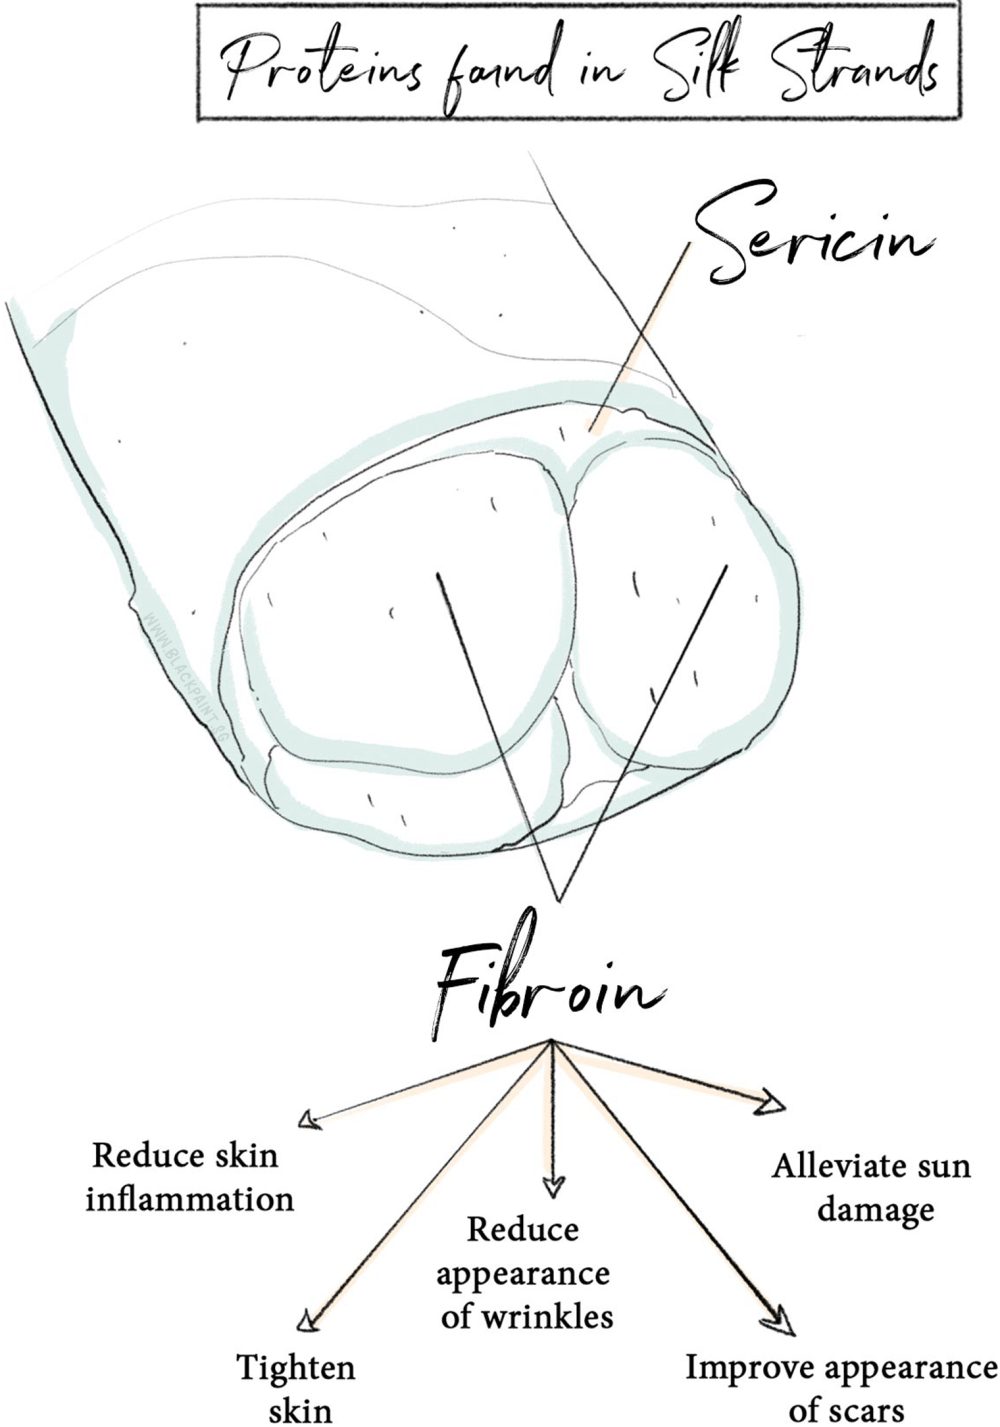 medium resolution of sericin and fibroin are the two key proteins found in silk strands